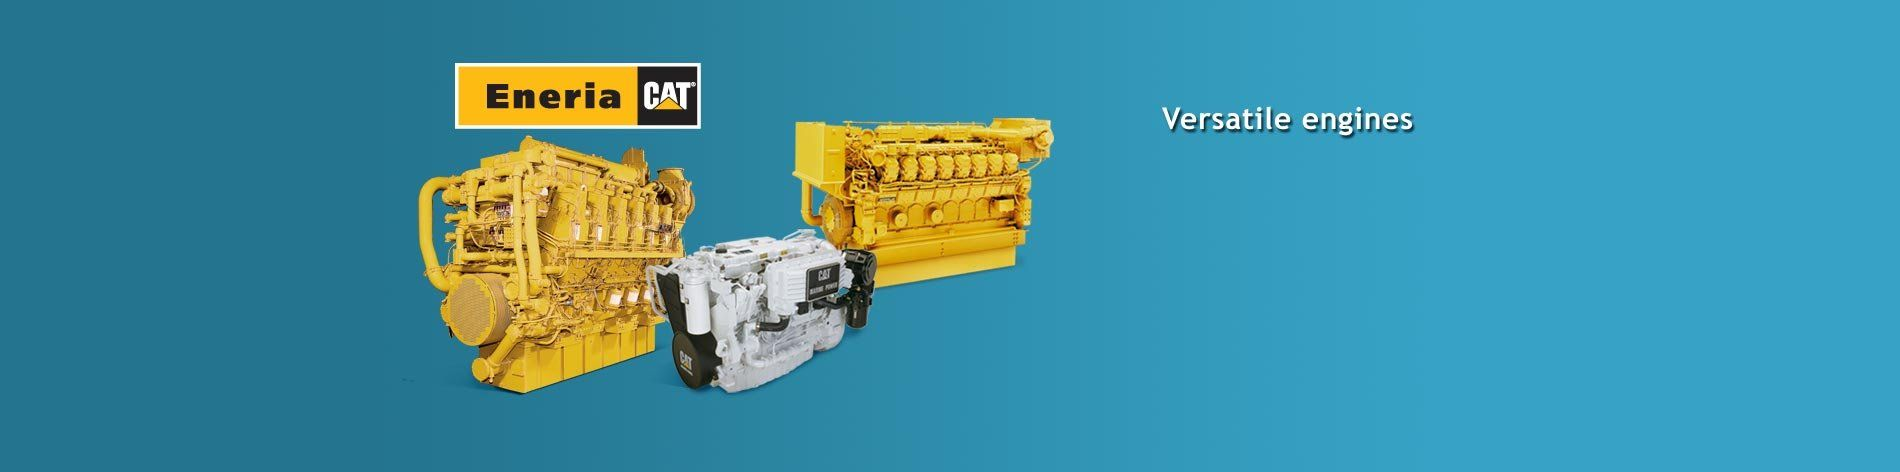 We offer the complete line of marine engines, auxiliary engines, propulsion engines and generator sets.